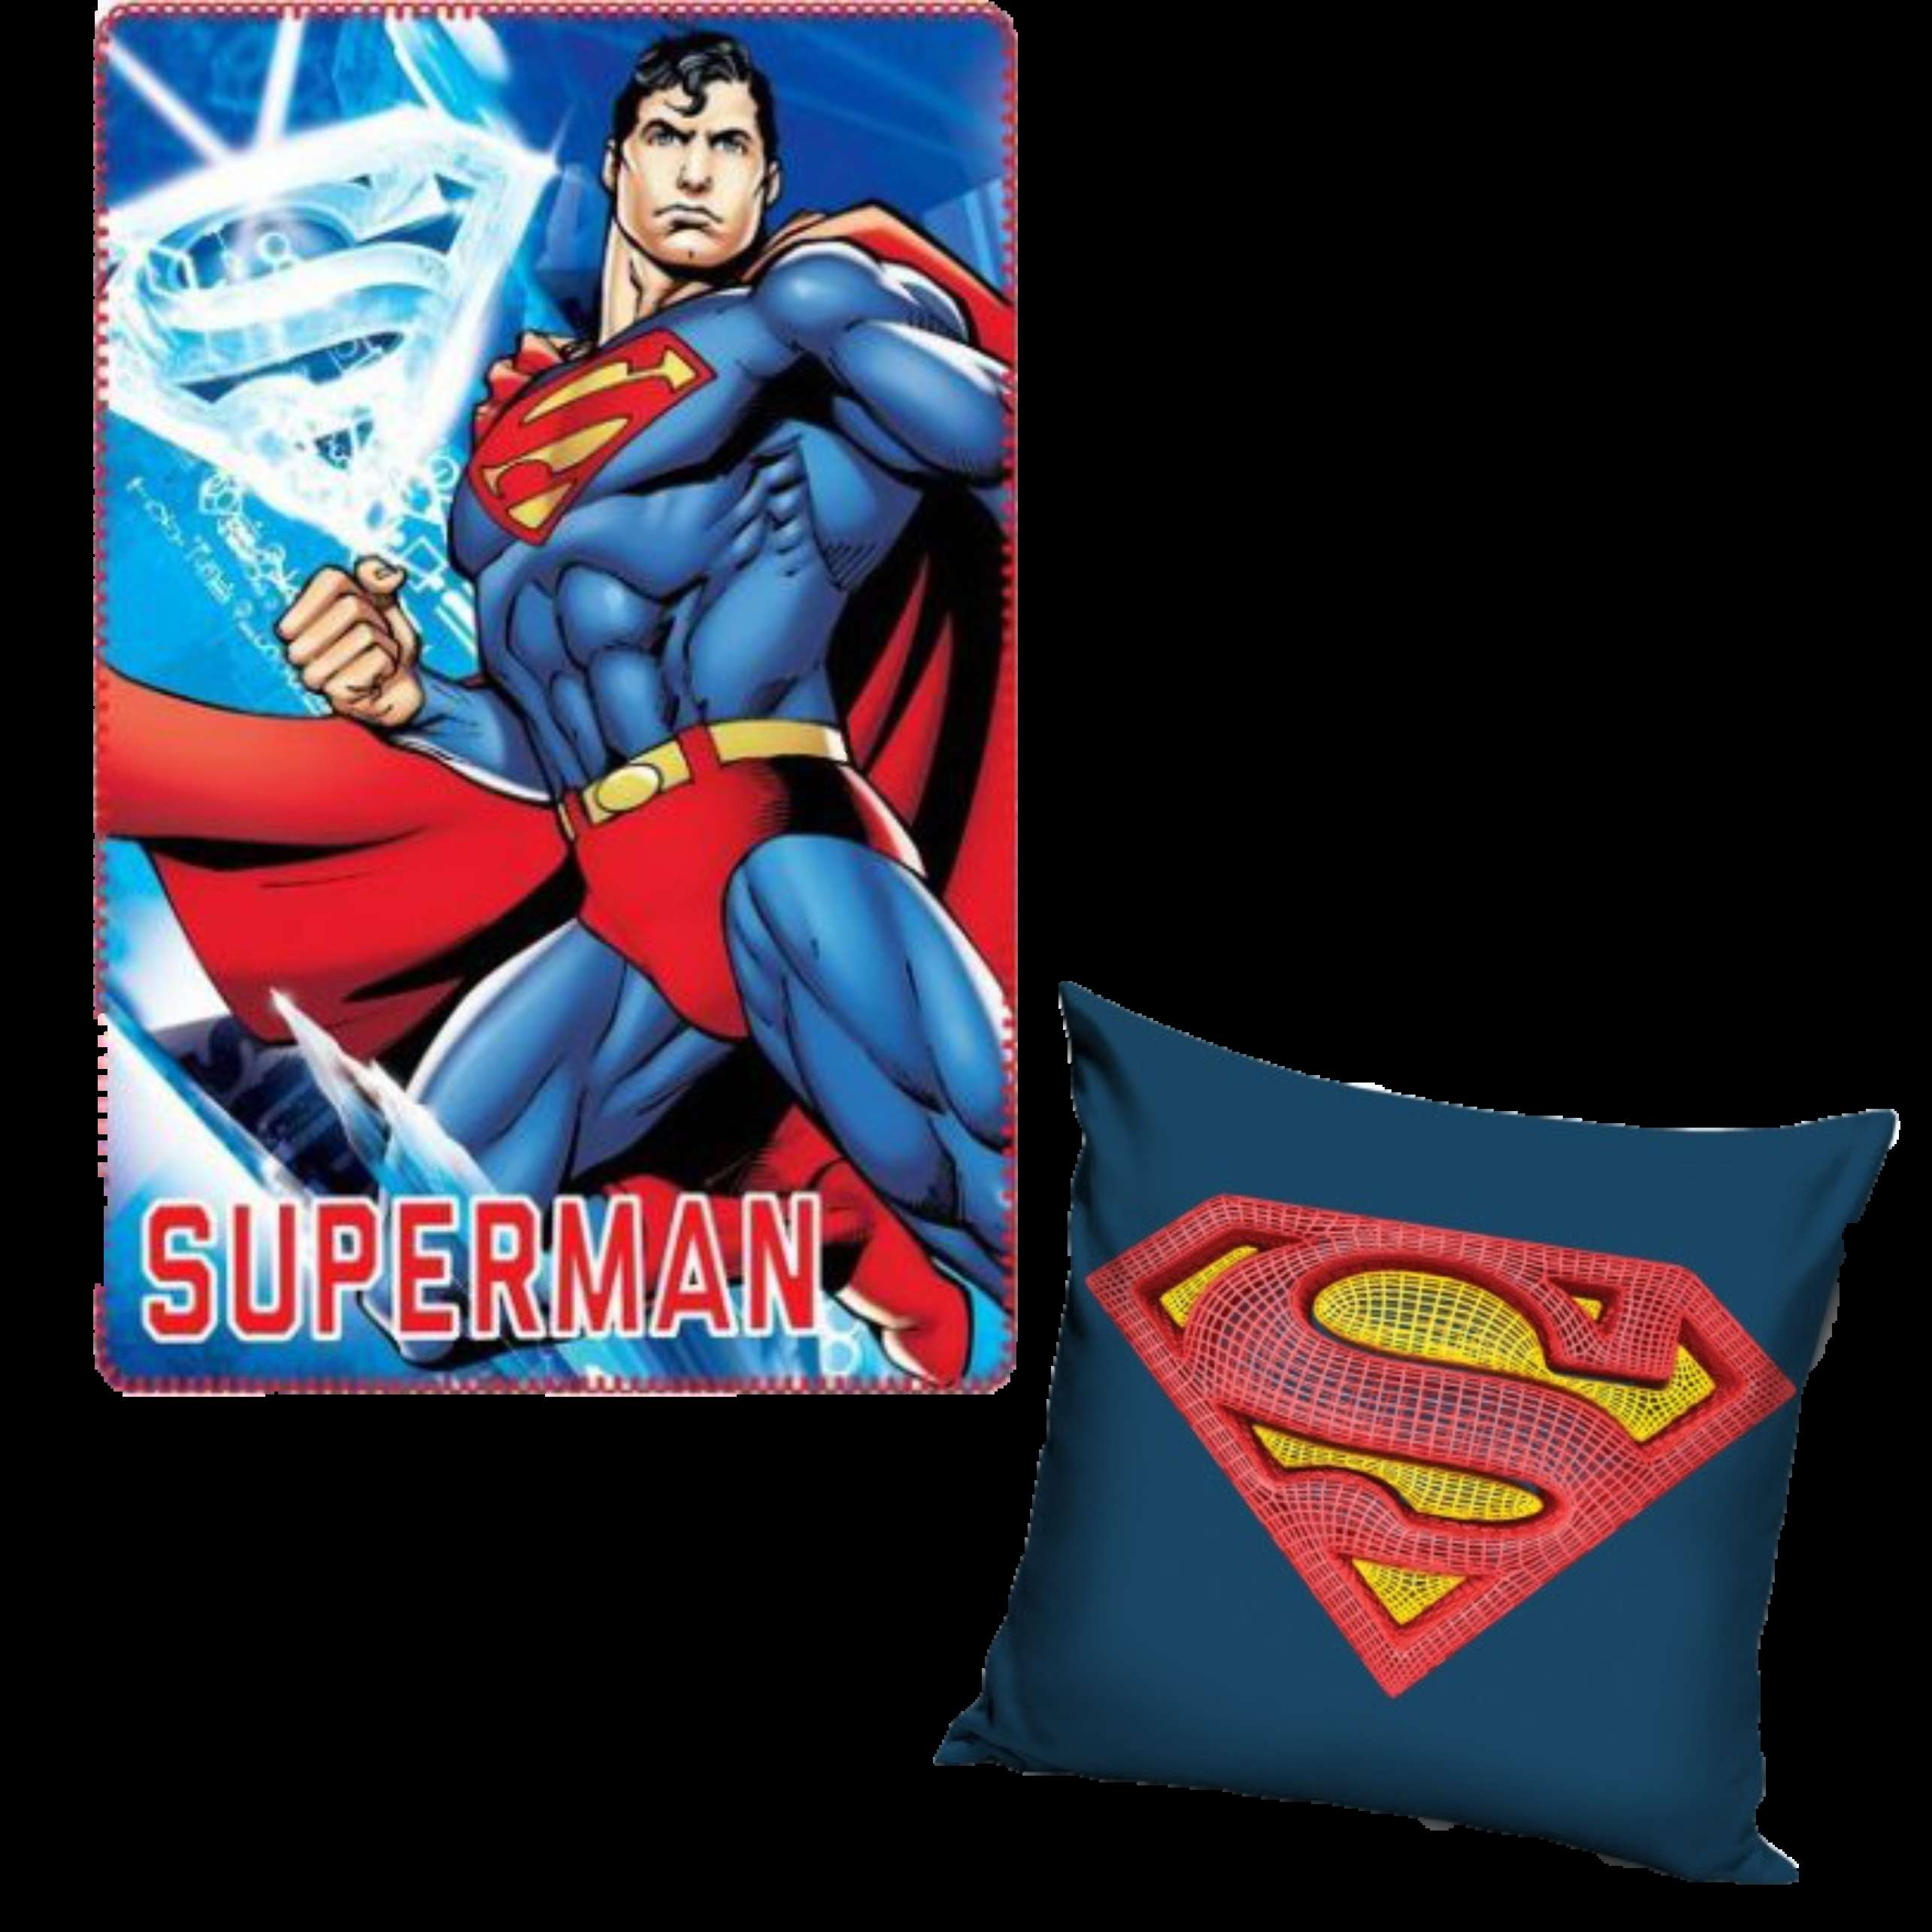 Superman Character Fleece Blanket And Pillowcase set